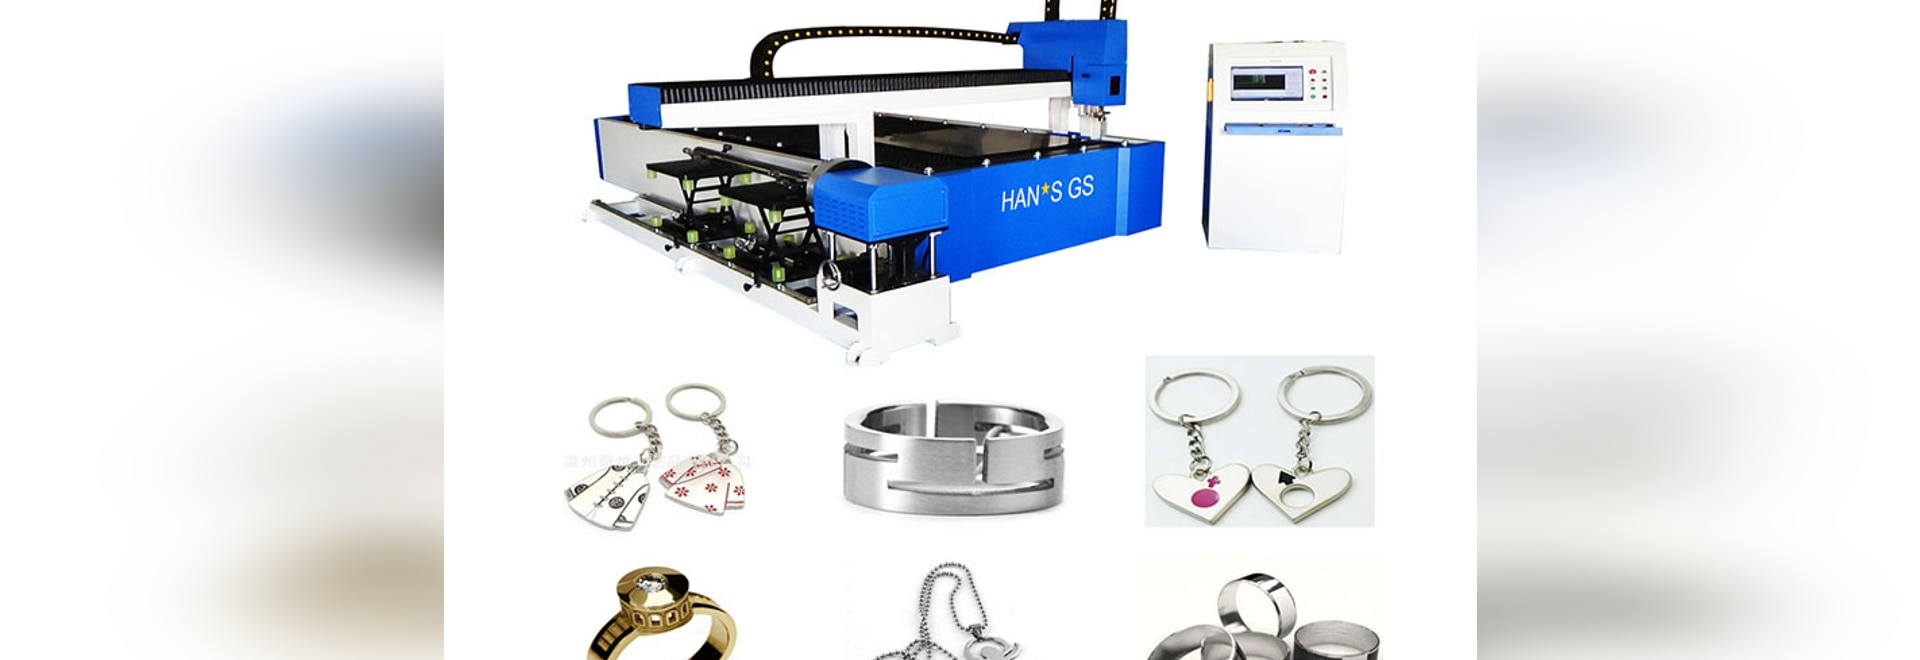 HANS GS LASER GS-LFTP SERIES FIBER LASER CUTTER ARE EXCELLENT PERFORMACNCE IN THE JEWELRY PROCESSING INDUSTRY!